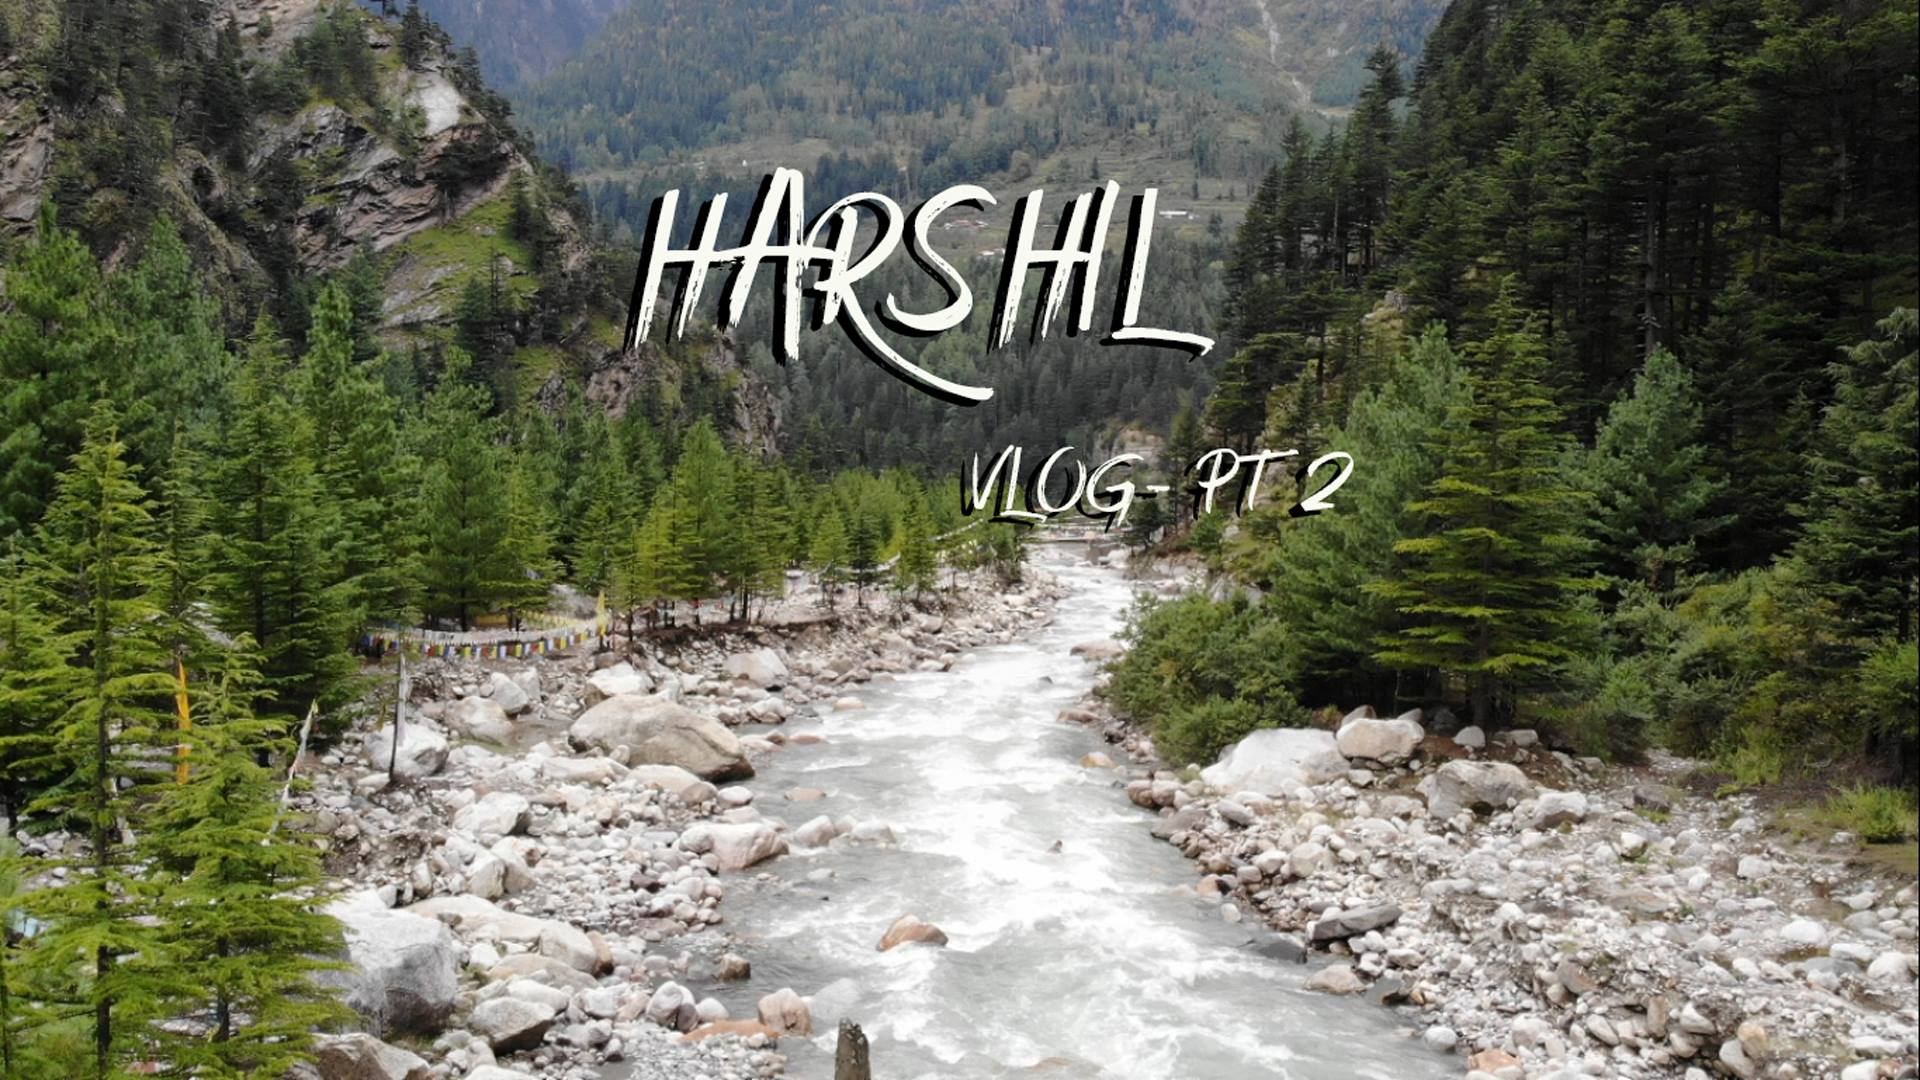 Backpacking Trip to Harshil Vlog 2